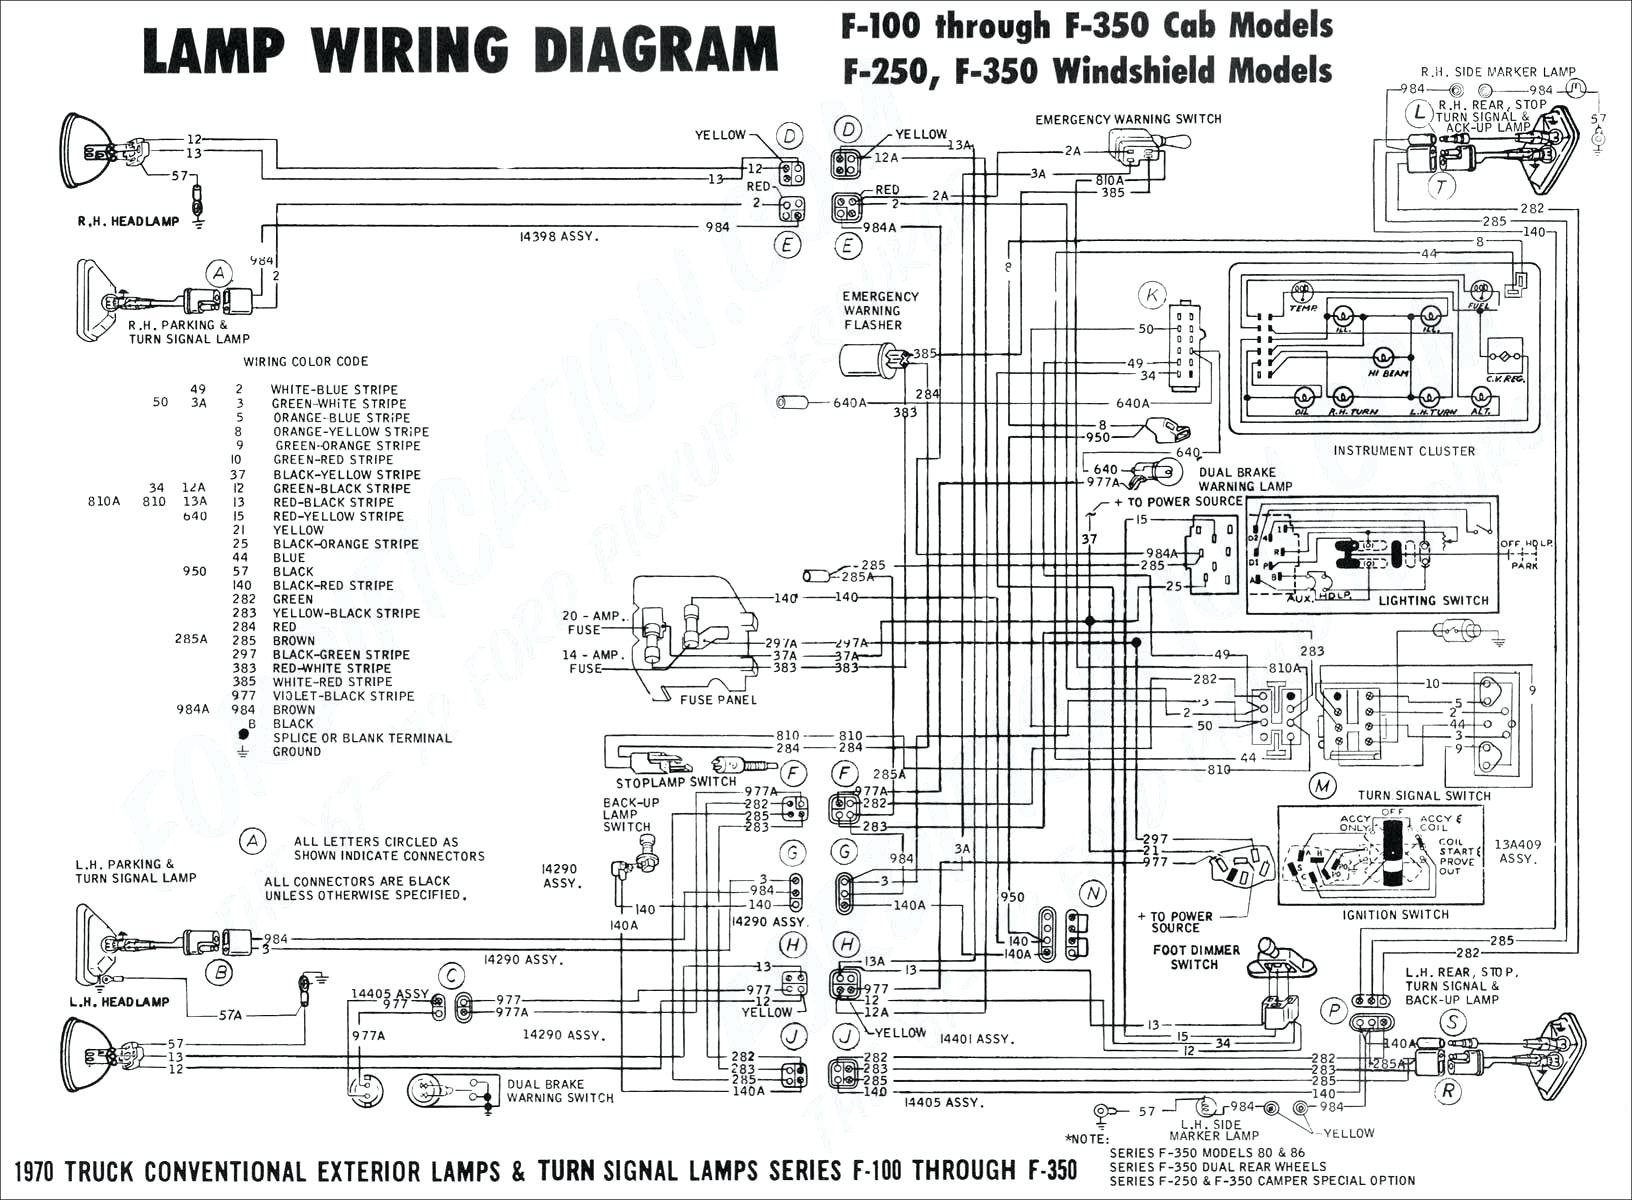 boeing wiring diagrams reading wiring diagrams user Boeing Exploded View